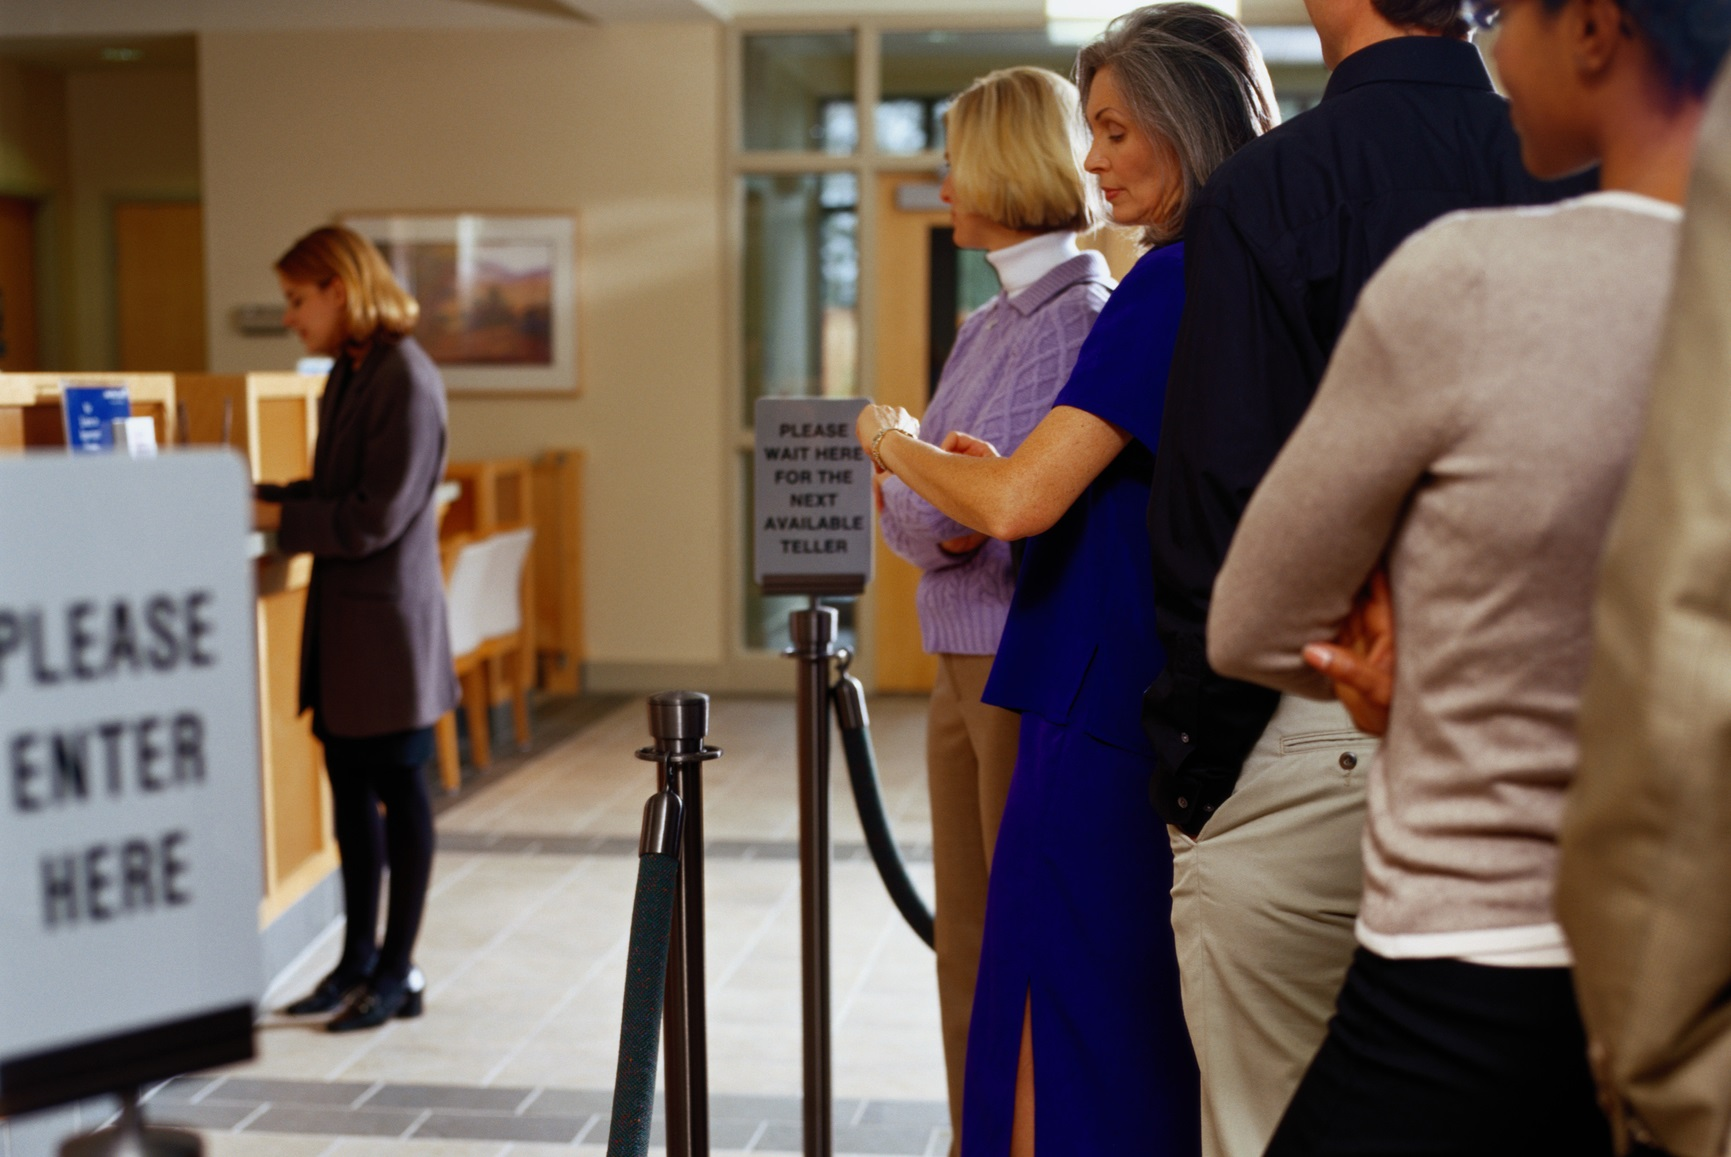 people waiting in line at a bank.